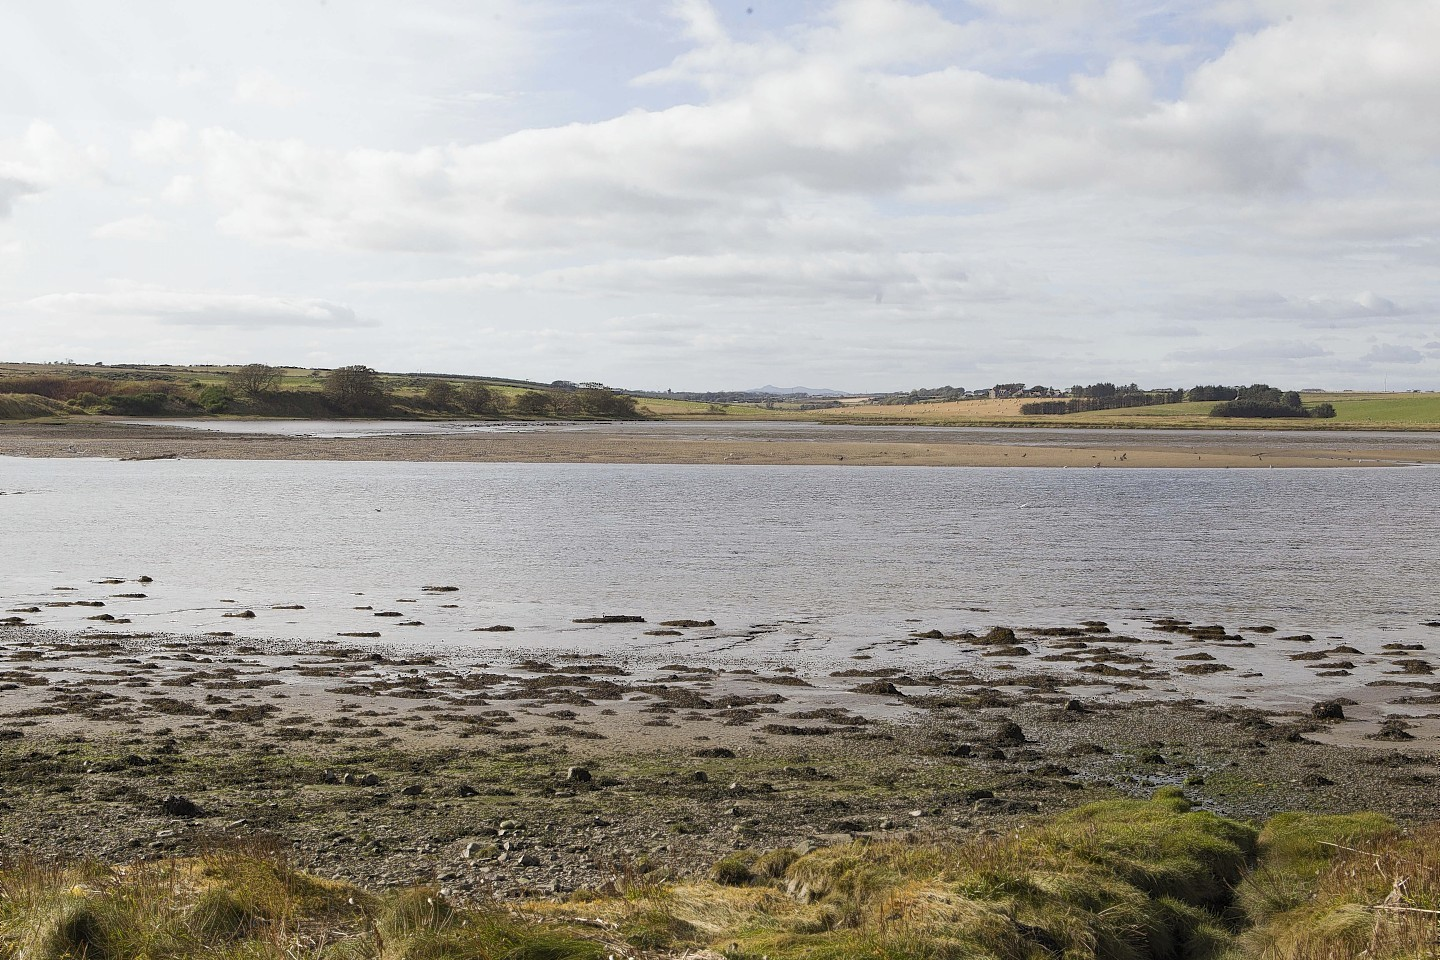 The Ythan Estuary, at Newburgh